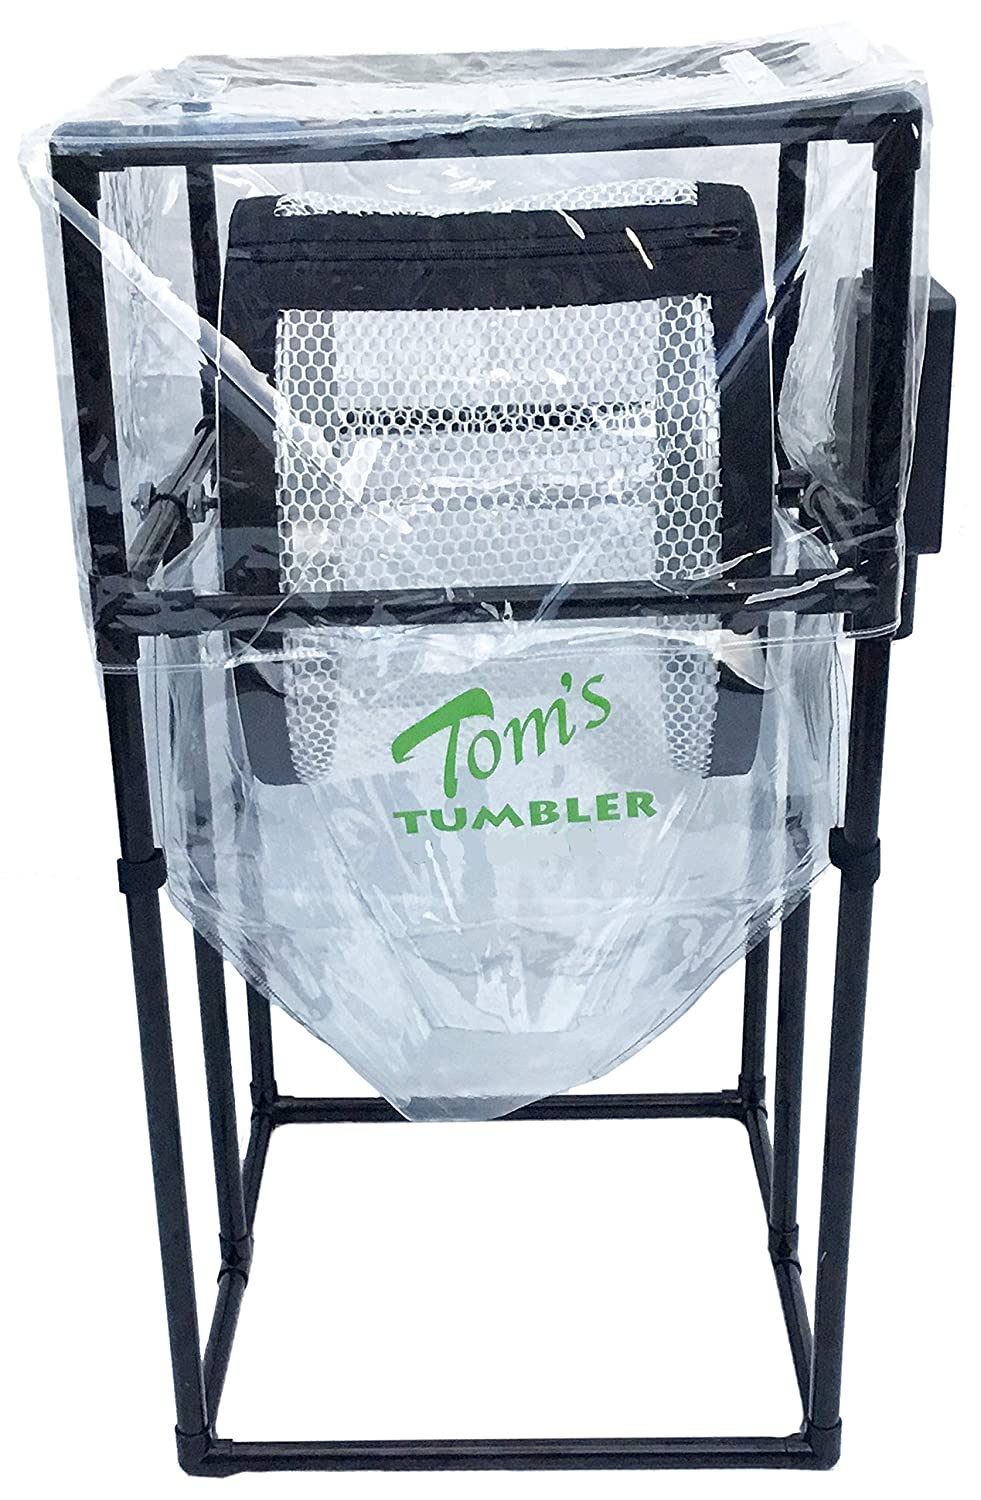 Tom s Tumbler TTT 1900 Dry Trimmer, Separator and Pollen Extraction System